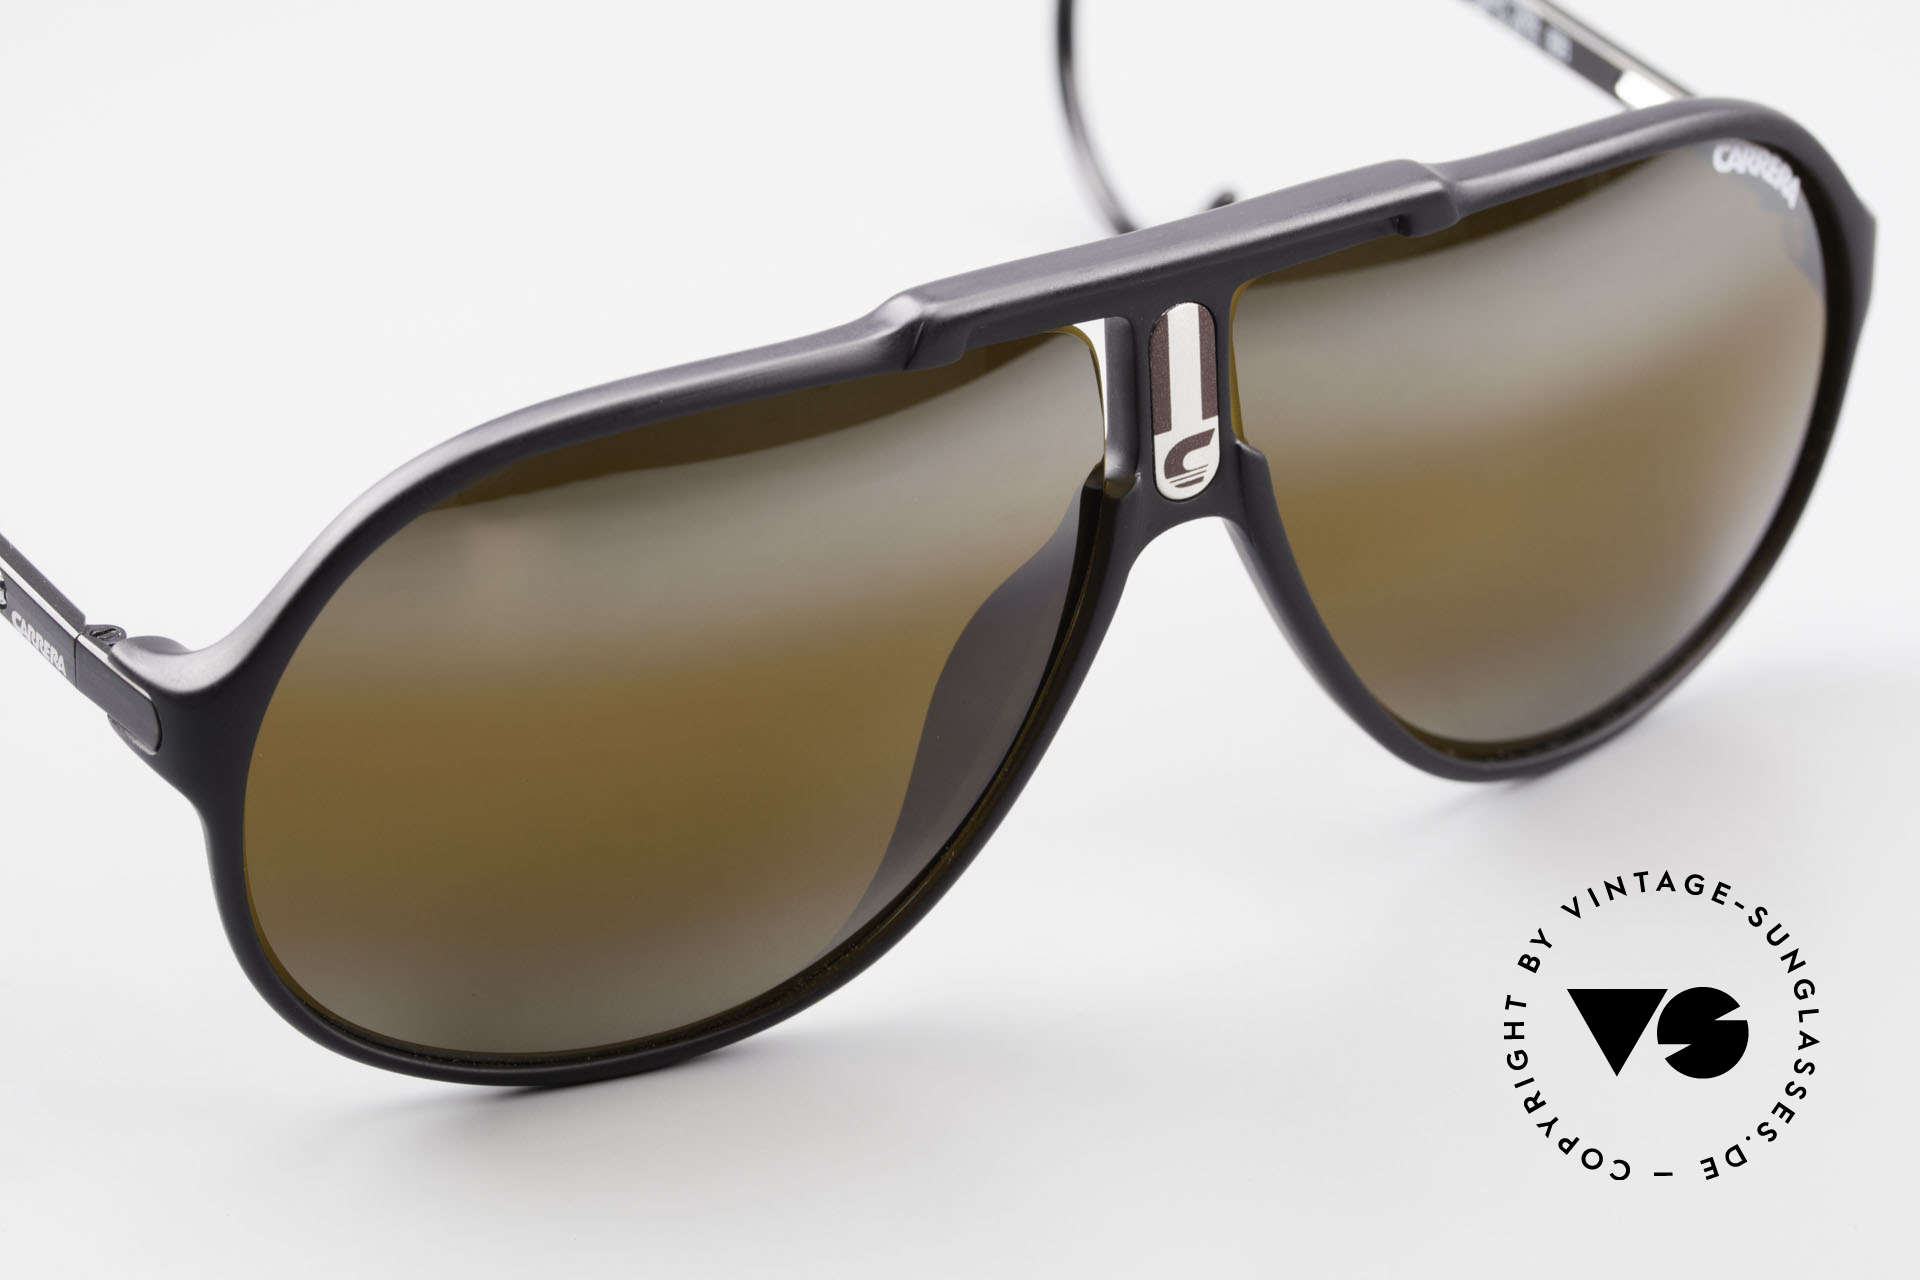 Carrera 5590 Mirrored Vario Sports Temples, unworn (like all our rare vintage Optyl Carrera eywear), Made for Men